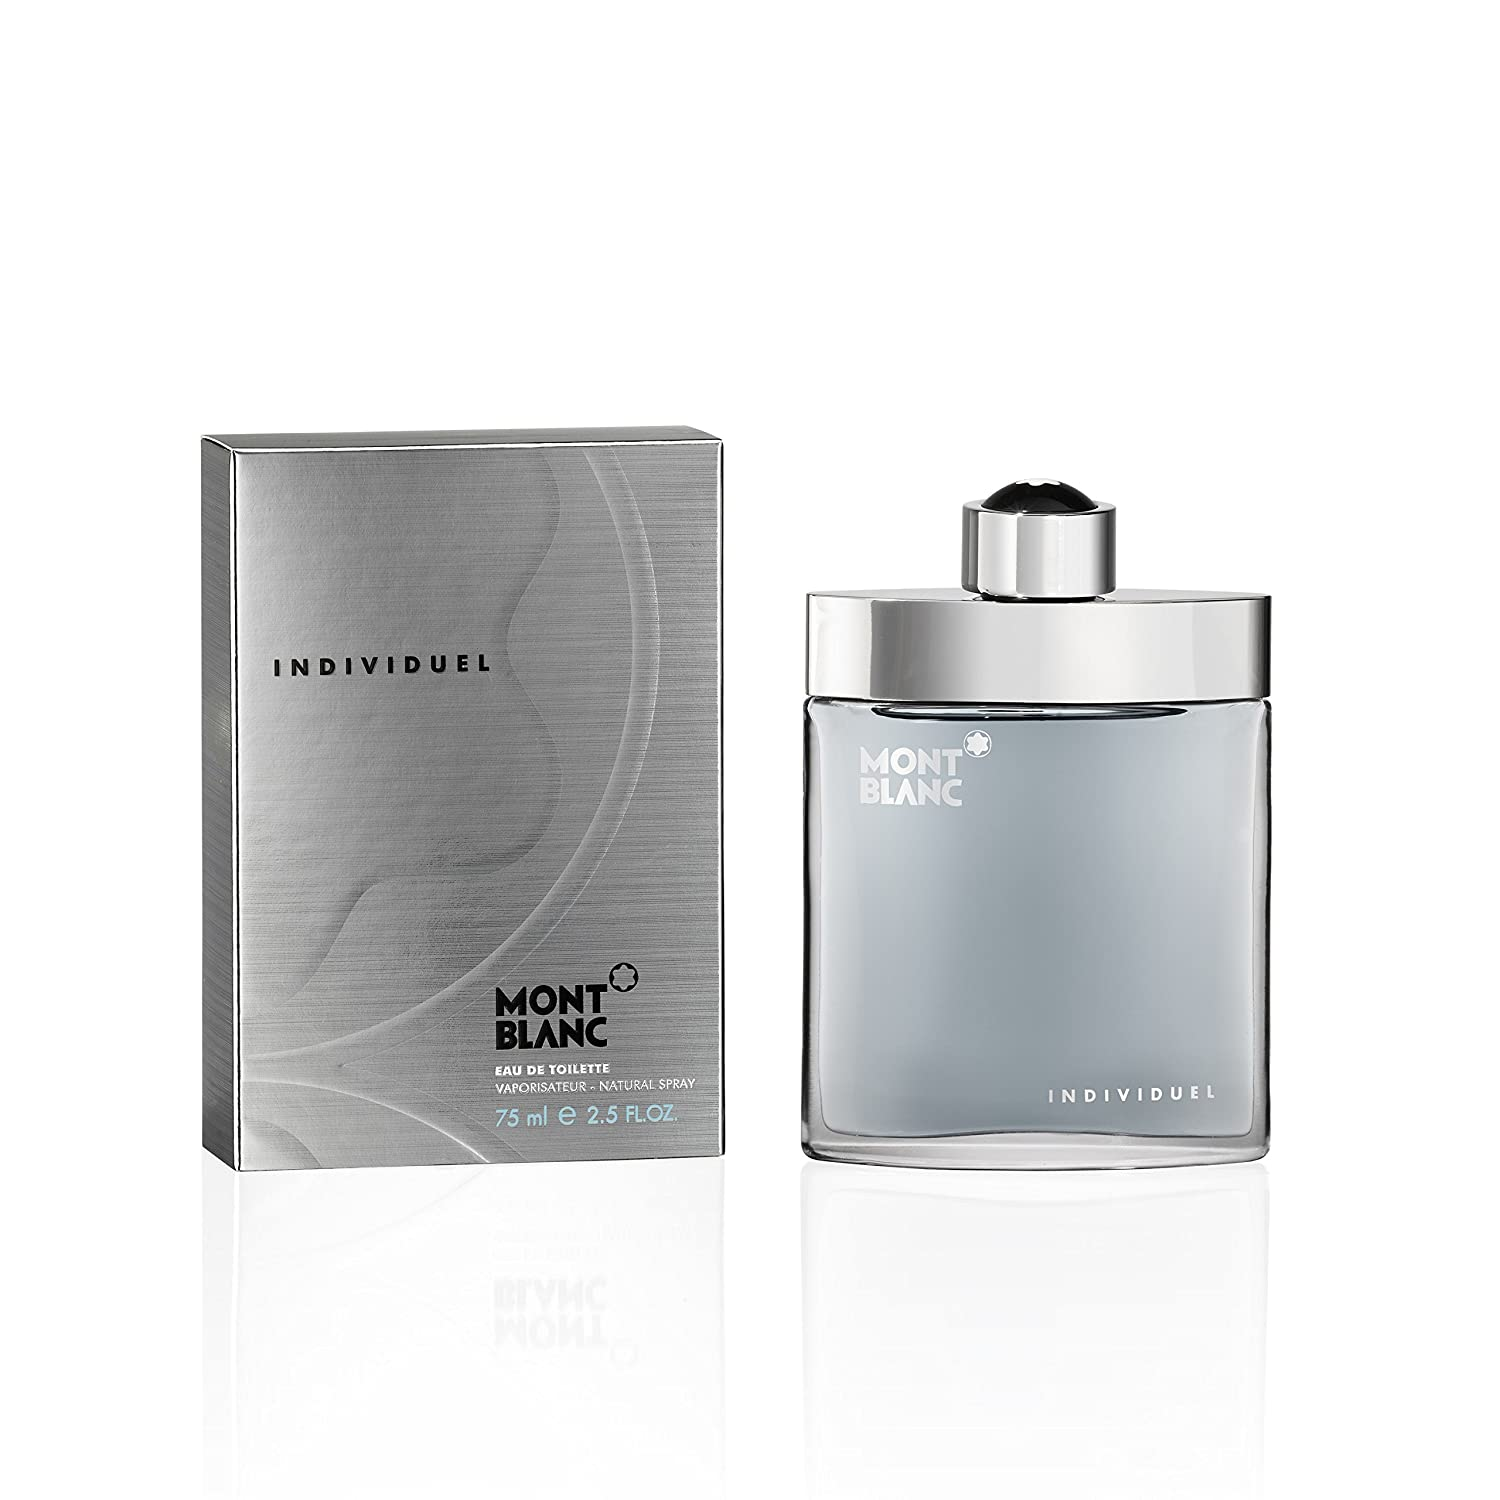 a657eeeb89 Amazon.com: MONTBLANC Individuel Eau de Toilette, 2.5 Fl Oz: MONT BLANC:  Luxury Beauty